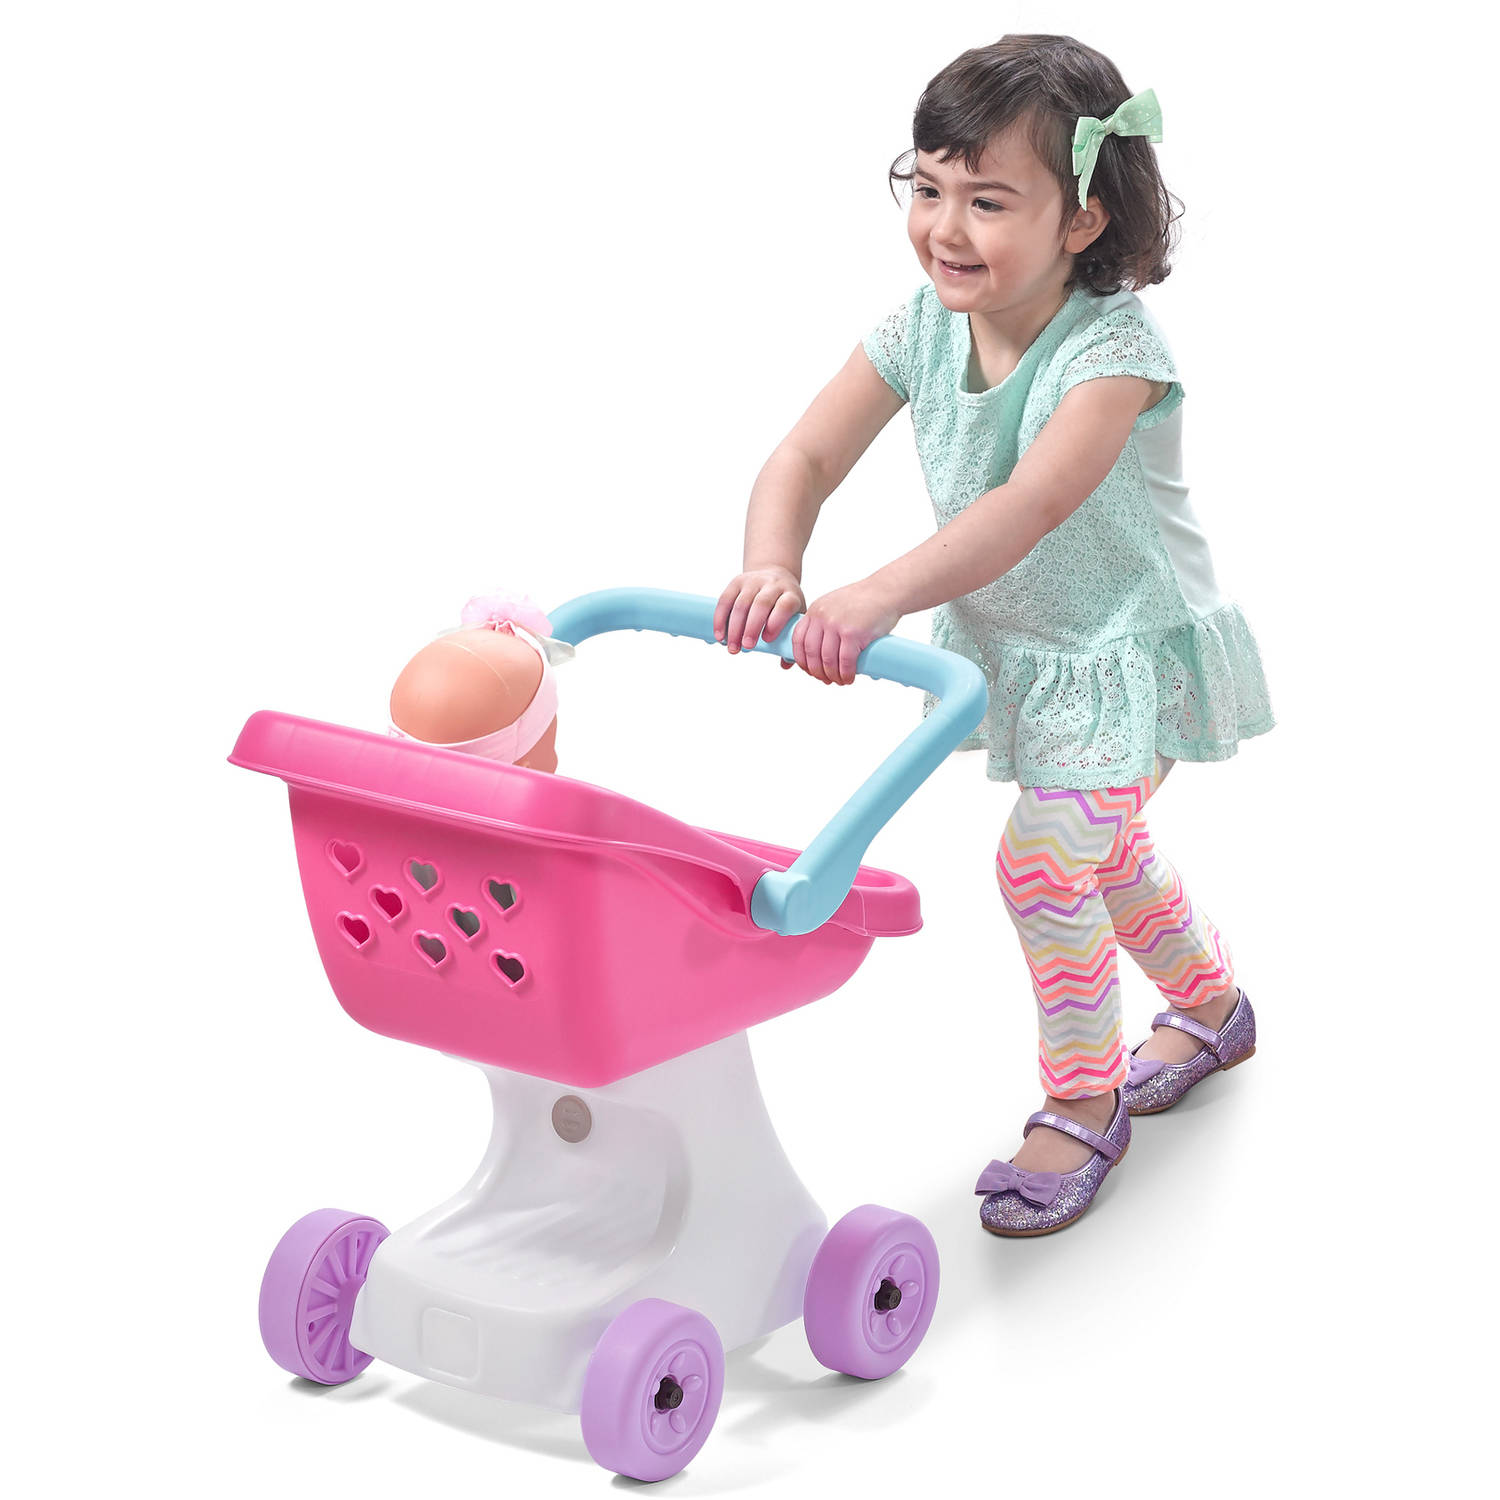 Toy Baby Doll : Double doll stroller walmart